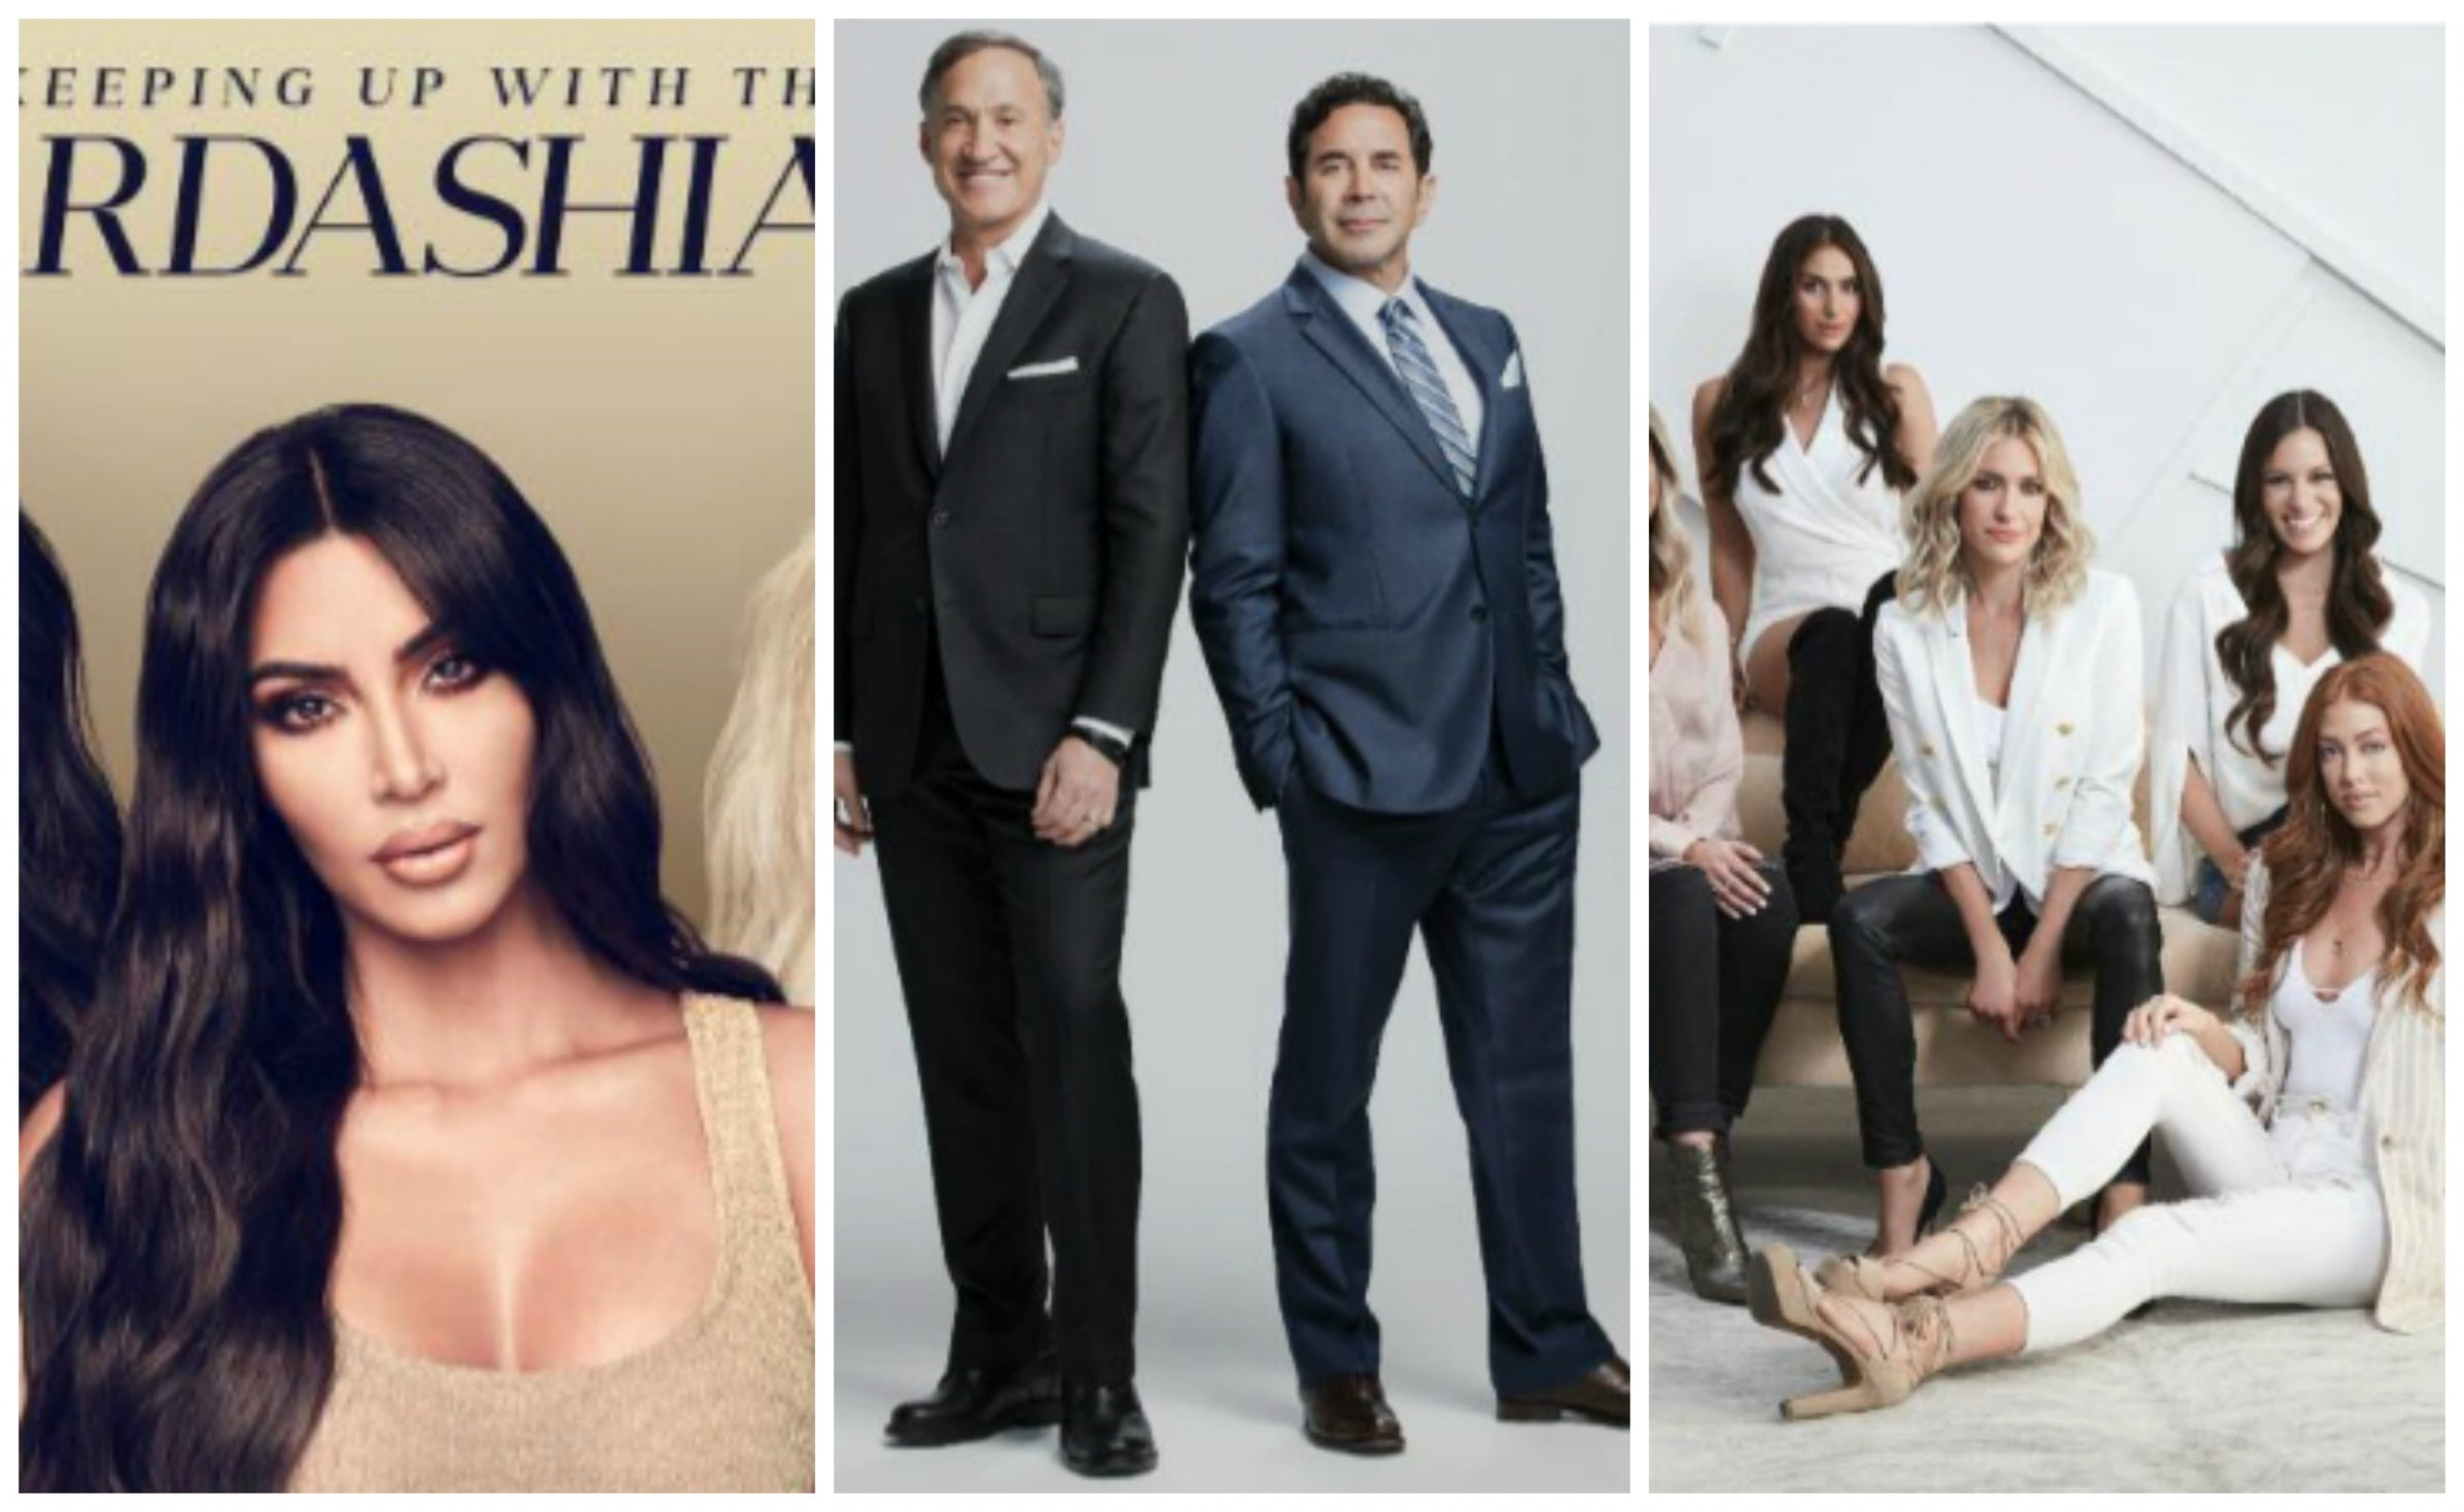 E! Entertainment Television highlights voor december 2019